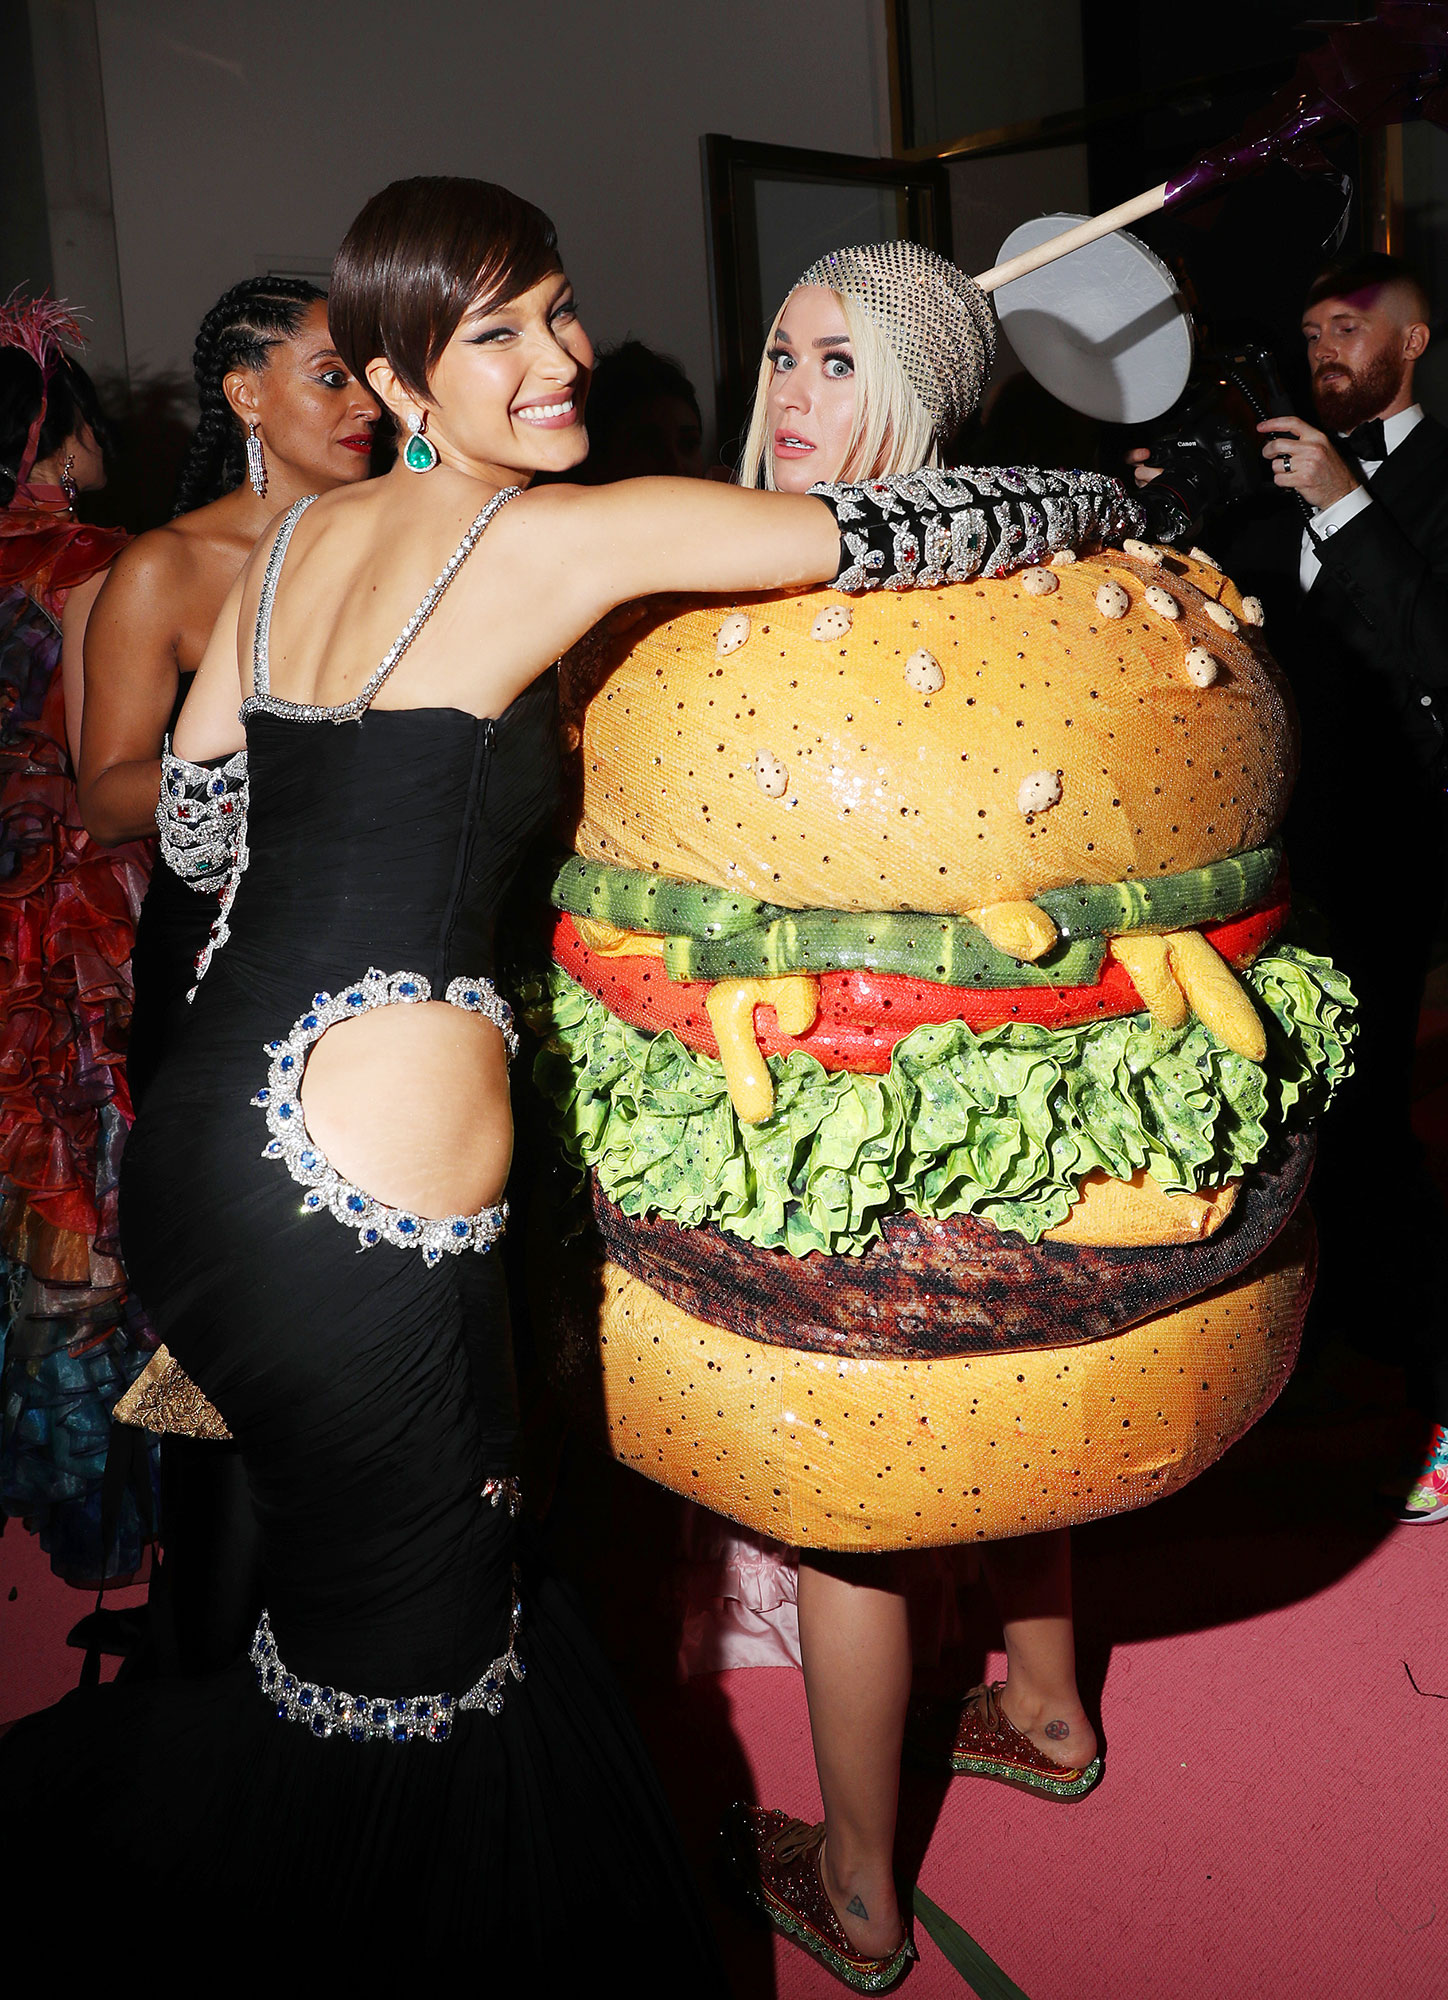 Met Gala 2019 What You Didnt See Bella Hadid Katy Perry - Bella Hadid embraced Katy Perry — and her hamburger outfit change.